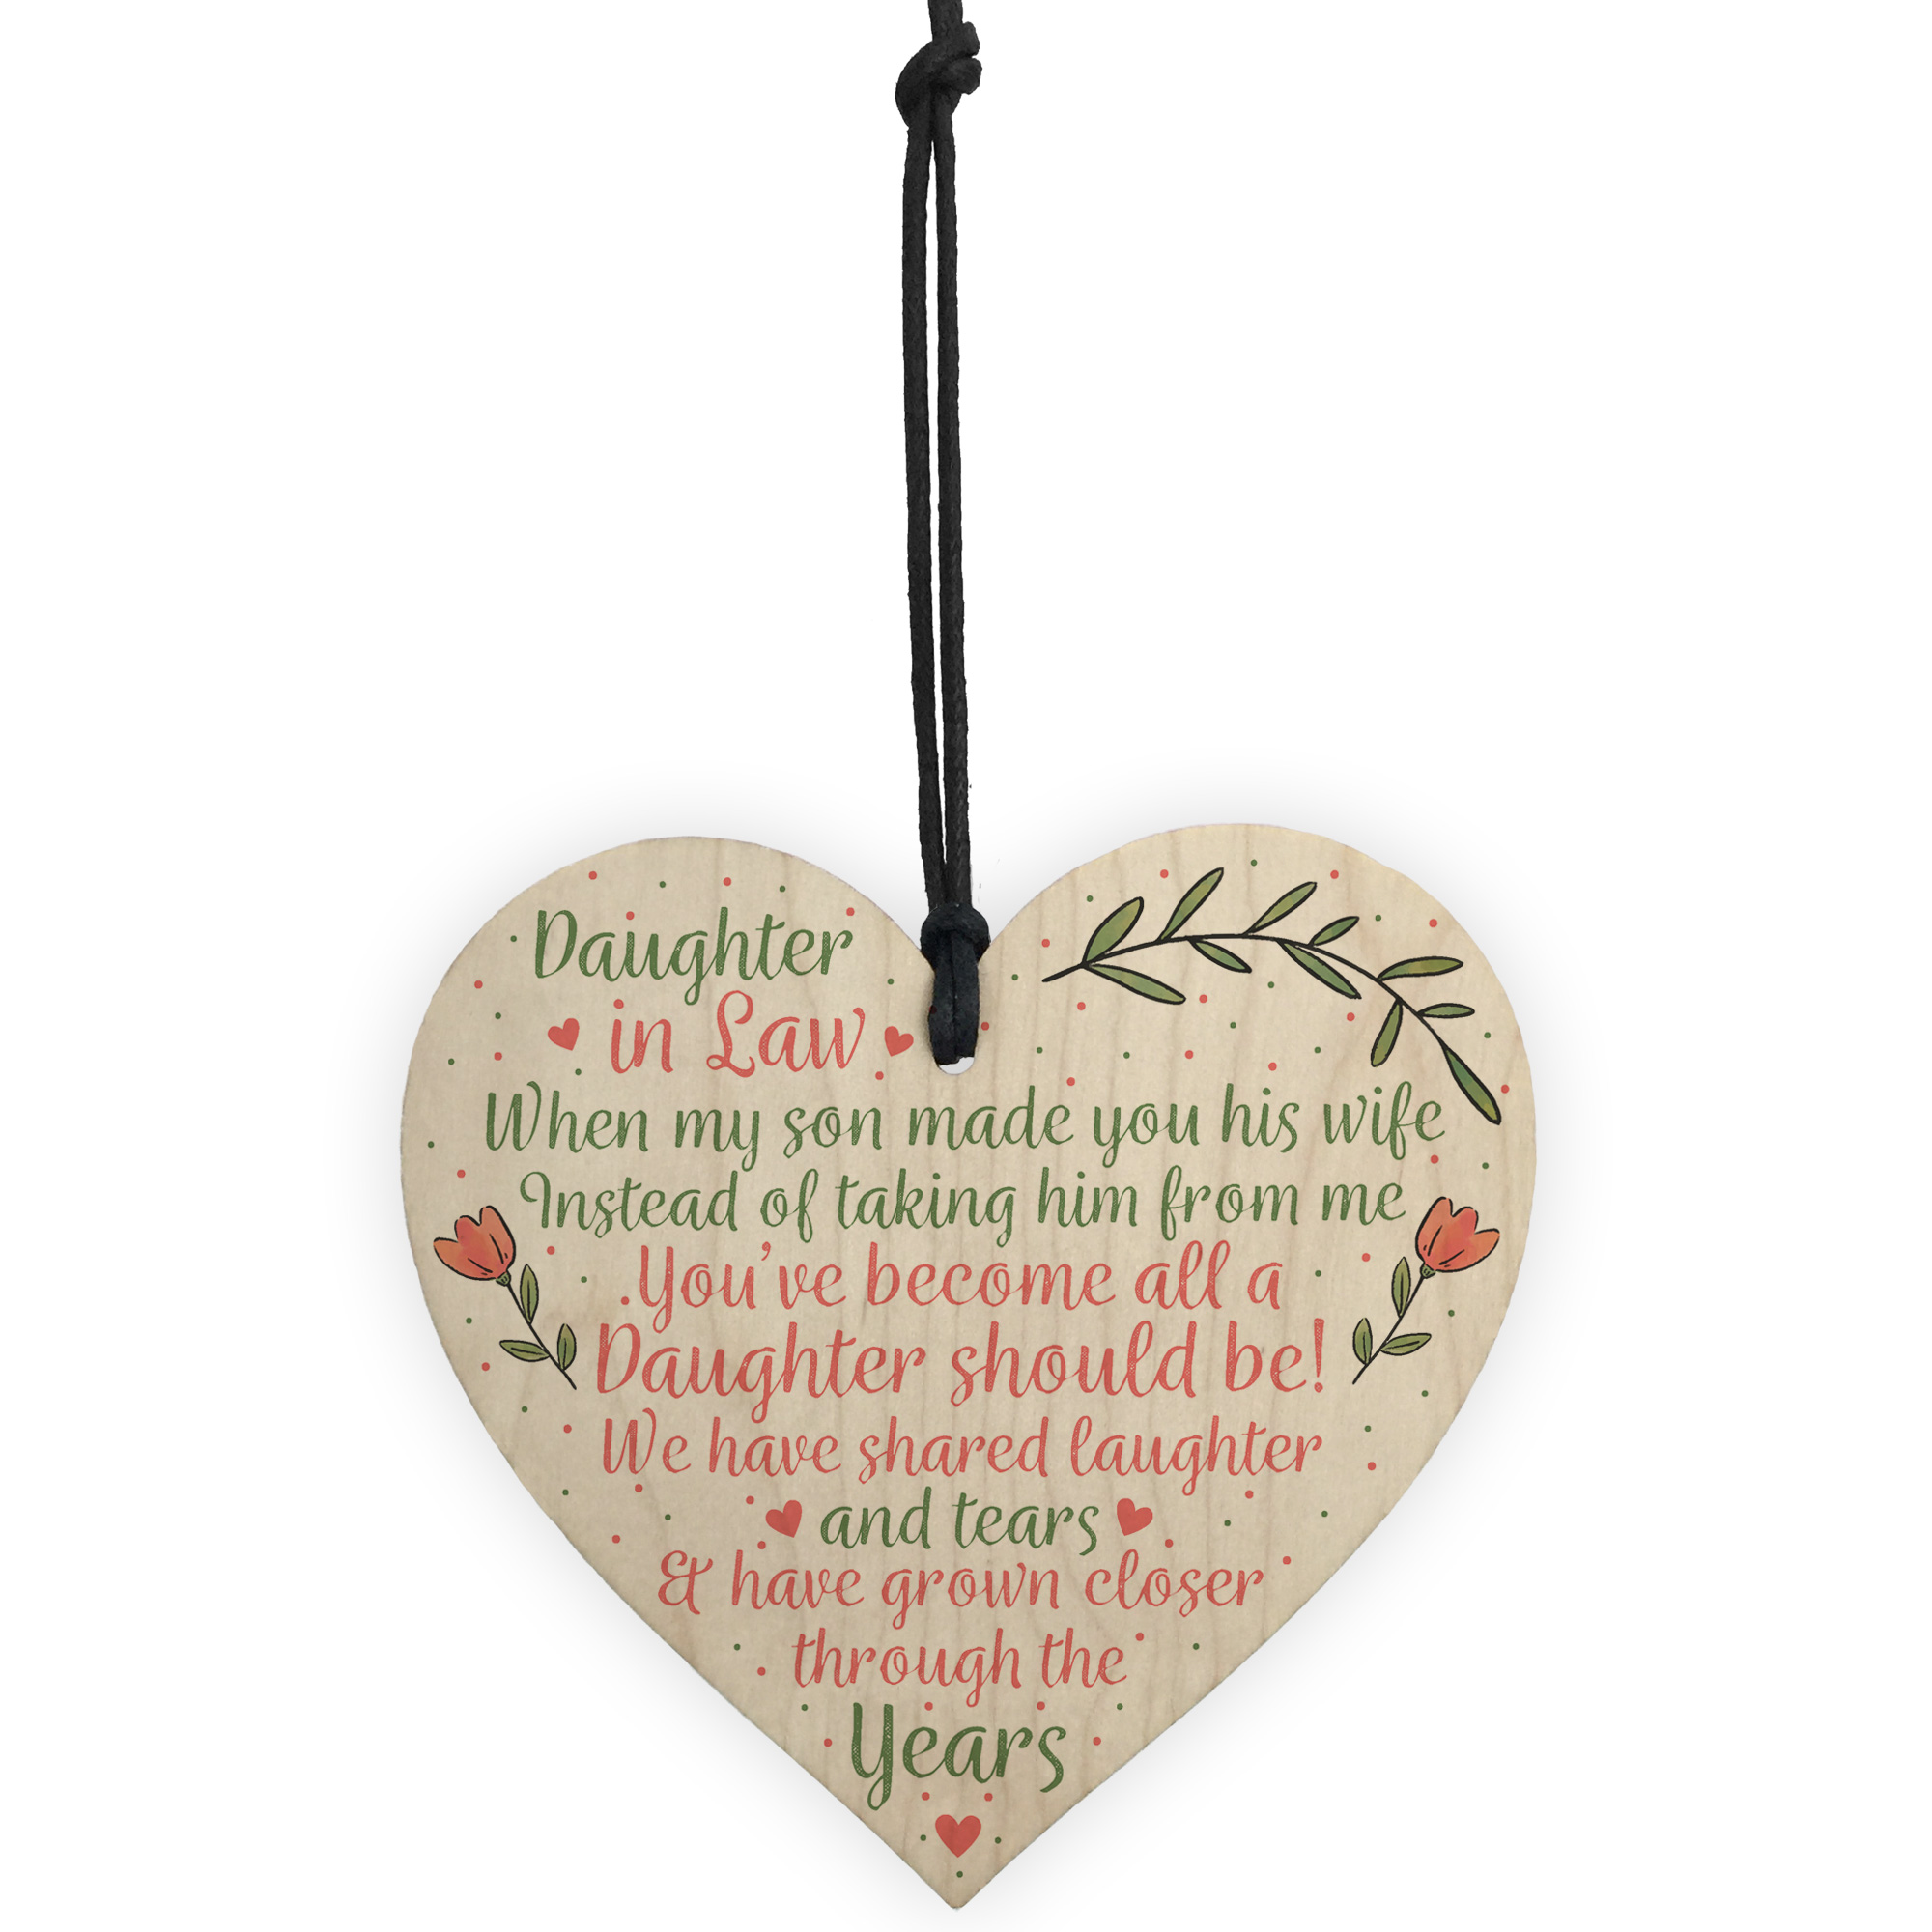 Details About Daughter In Law Birthday Christmas GIFTS Wooden Heart Plaque Mum Son